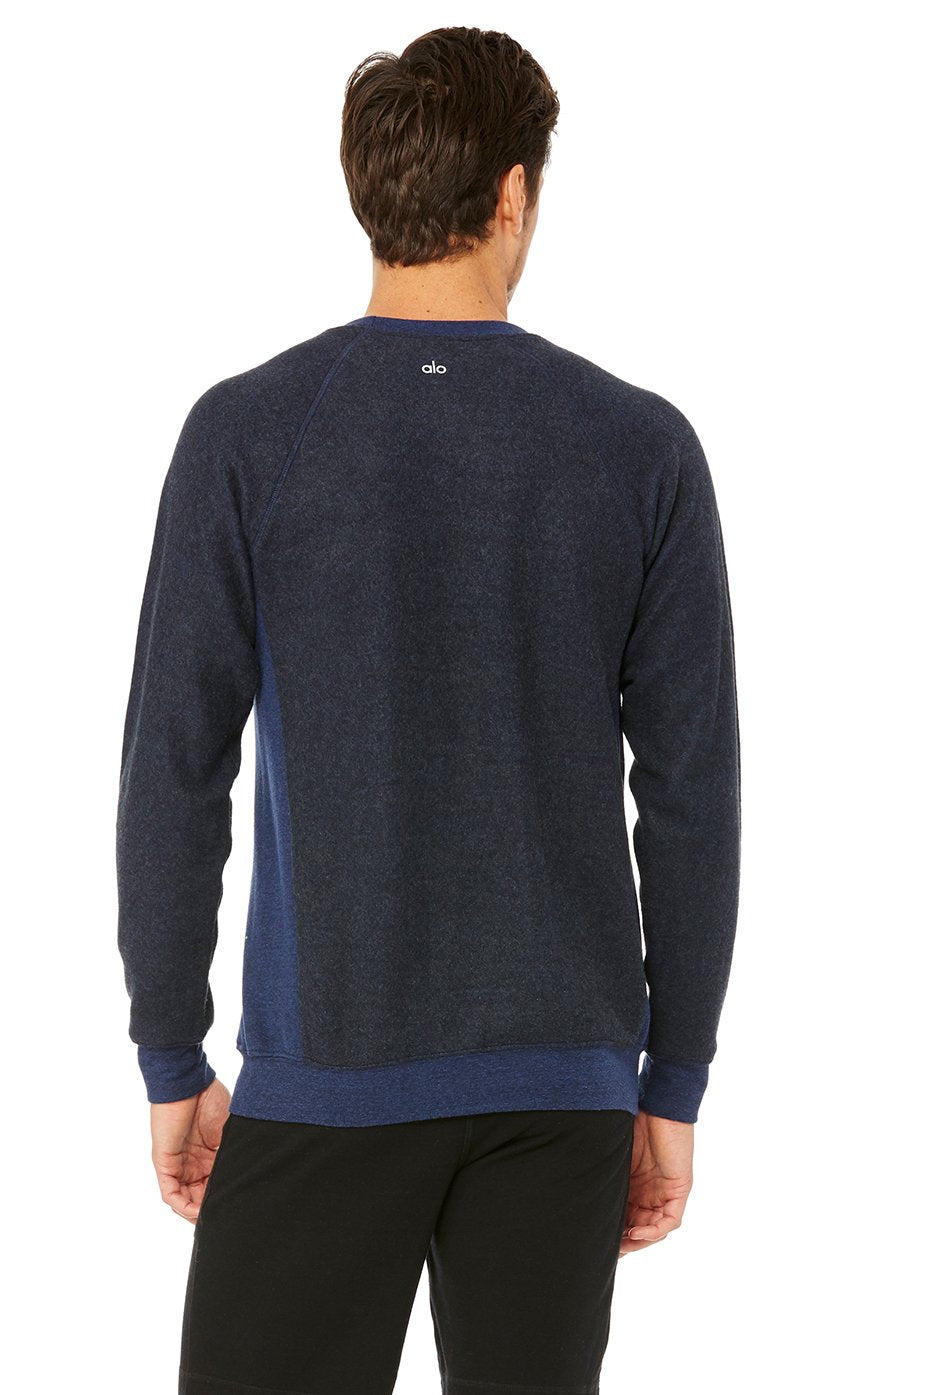 The Triumph Crew Neck Sweatshirt